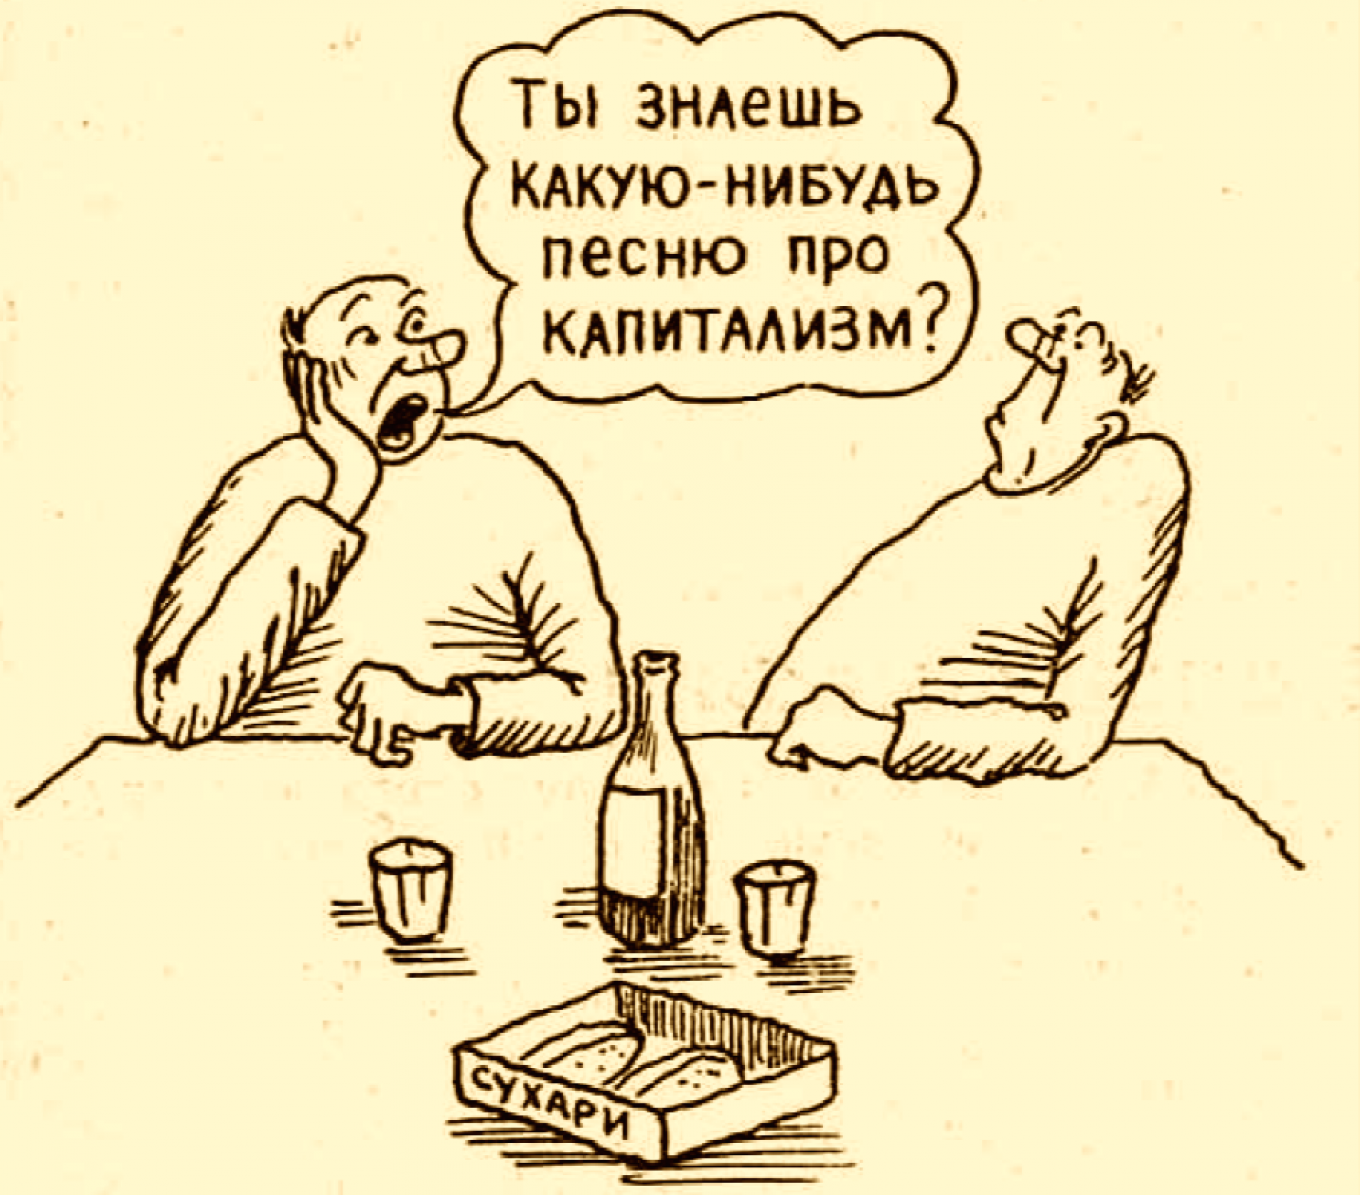 """""""Do you know any songs about capitalism?"""" Political satire from the early 90s in Izvestia, depicting poverty after the collapse of the communist era.  Izvestia Archive"""